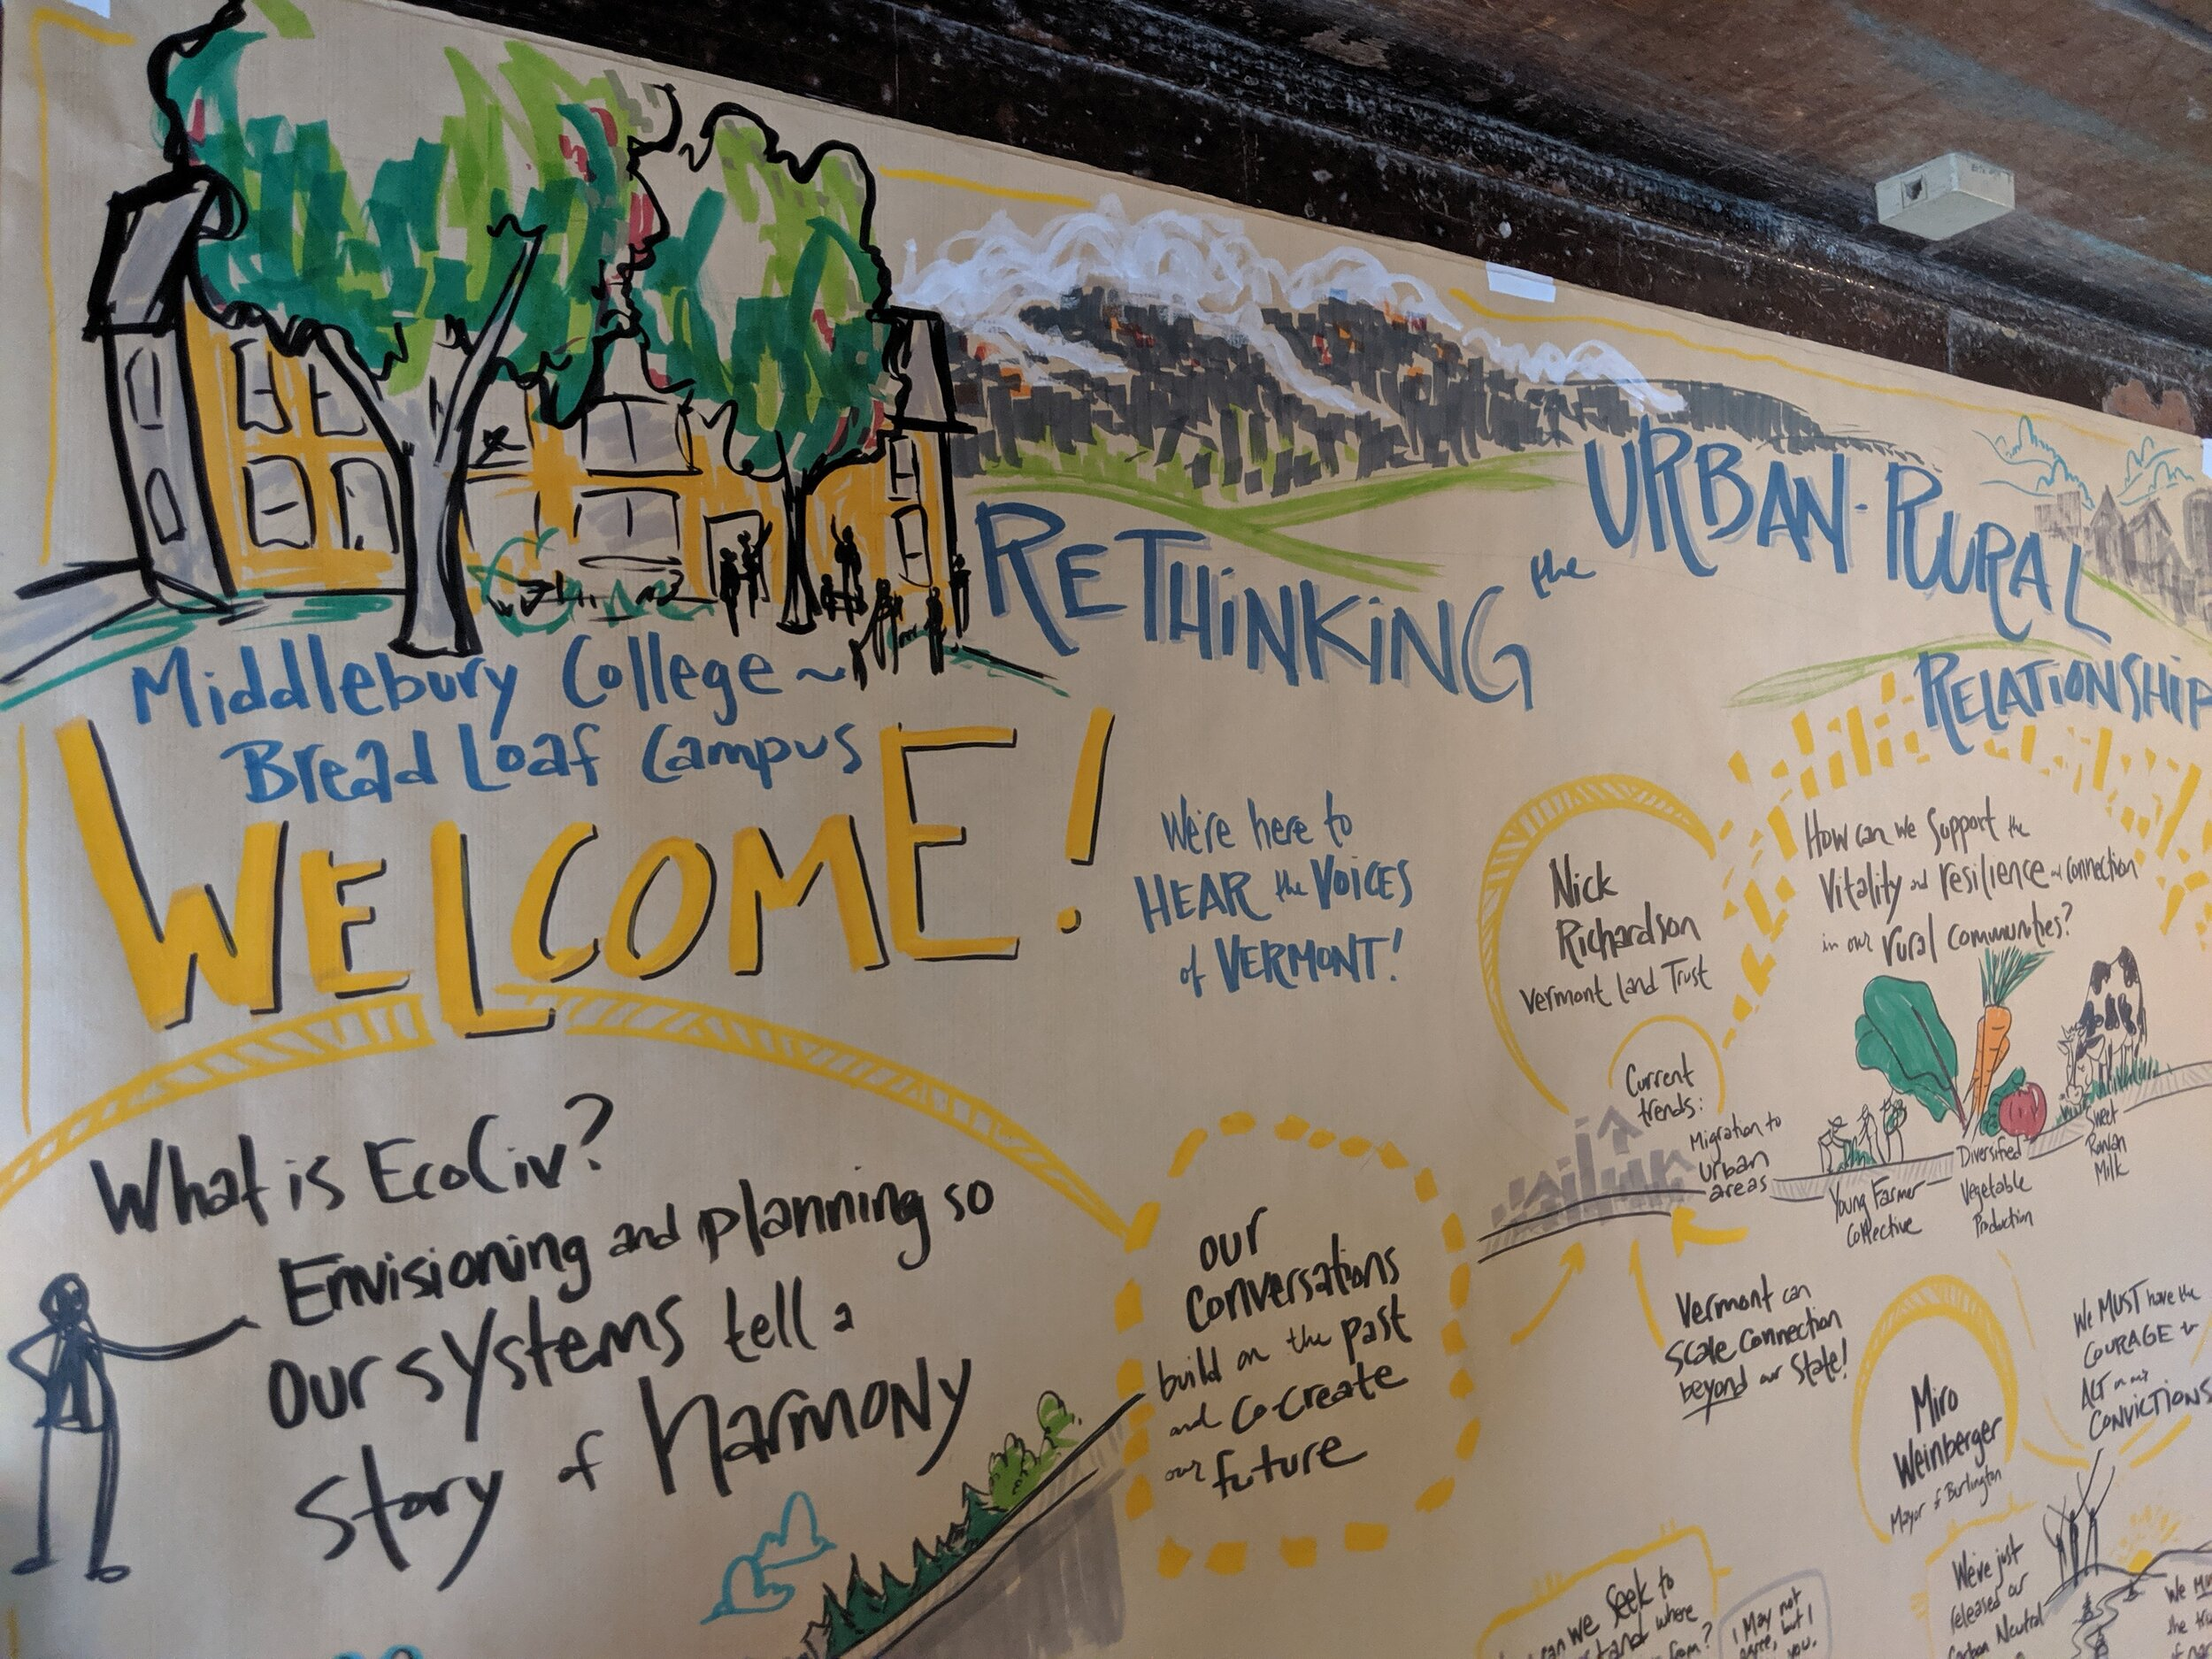 Middlebury, Vermont:  With the Institute for Ecological Civilization partnering with citizens in Vermont to support them as they co-created a vision across urban and rural communities in the state.